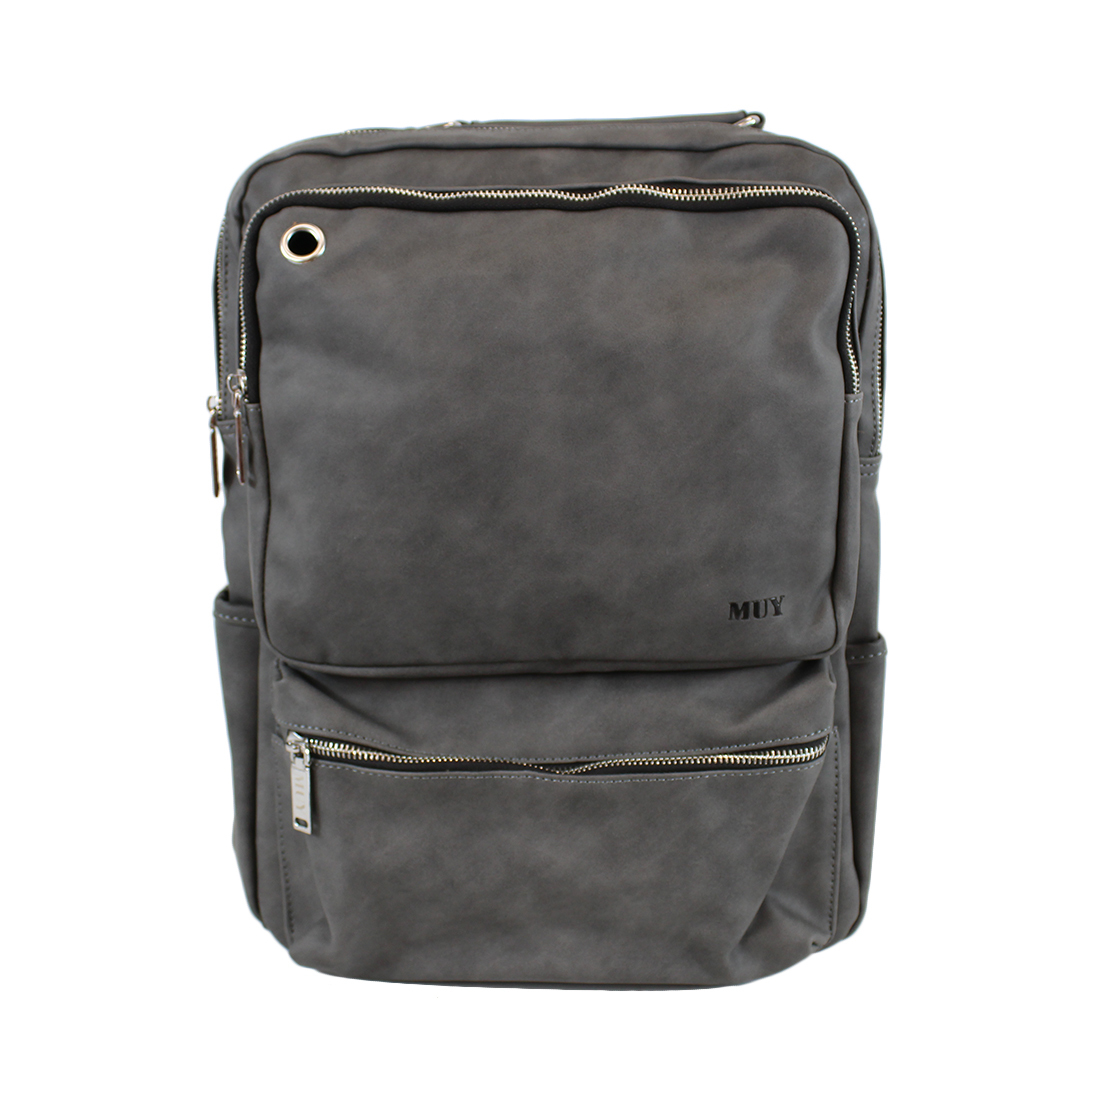 Real Leather - Plain with silver zips